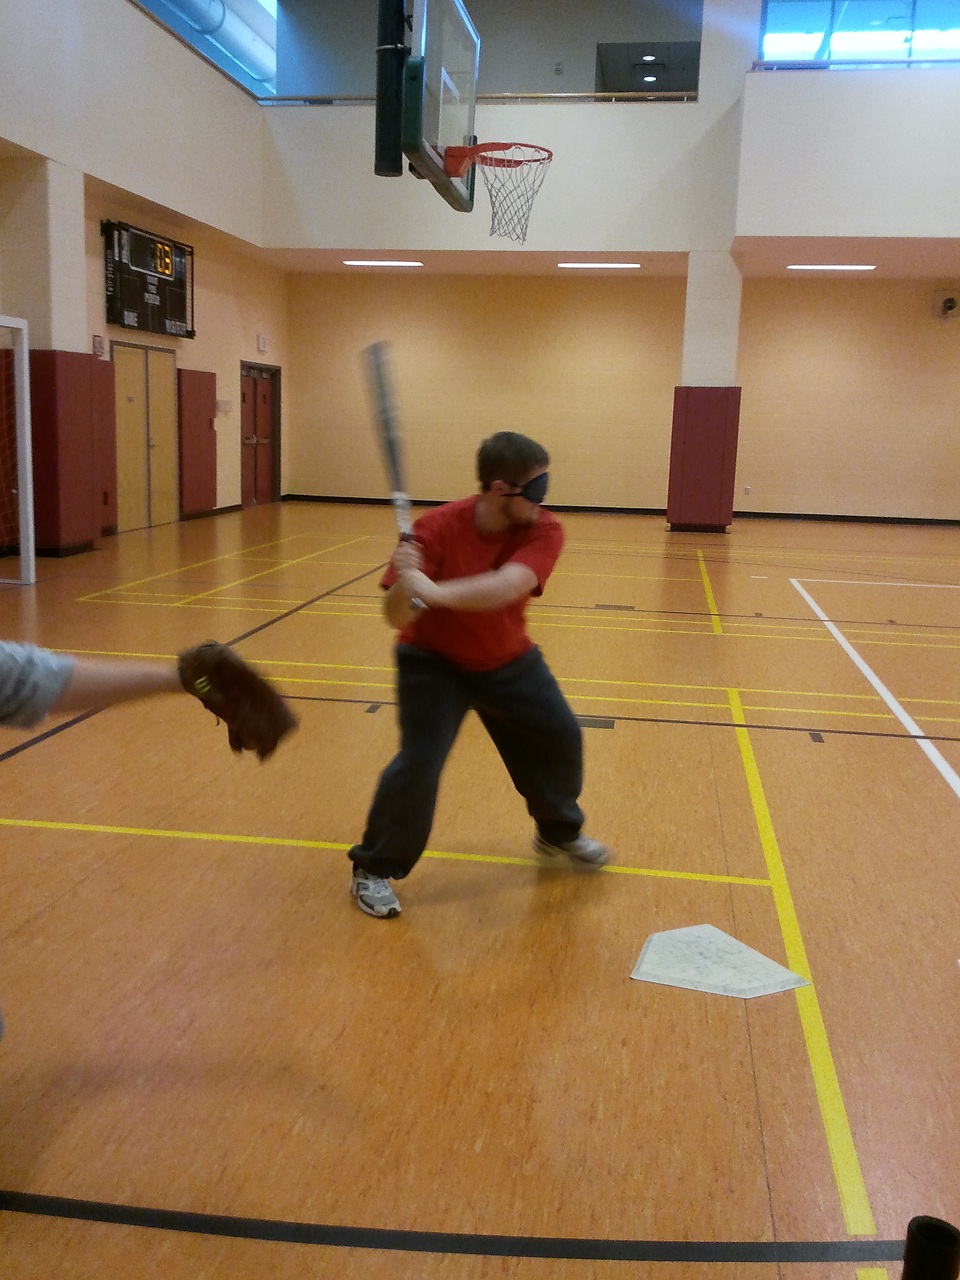 Blindfolded James in his batting Stance